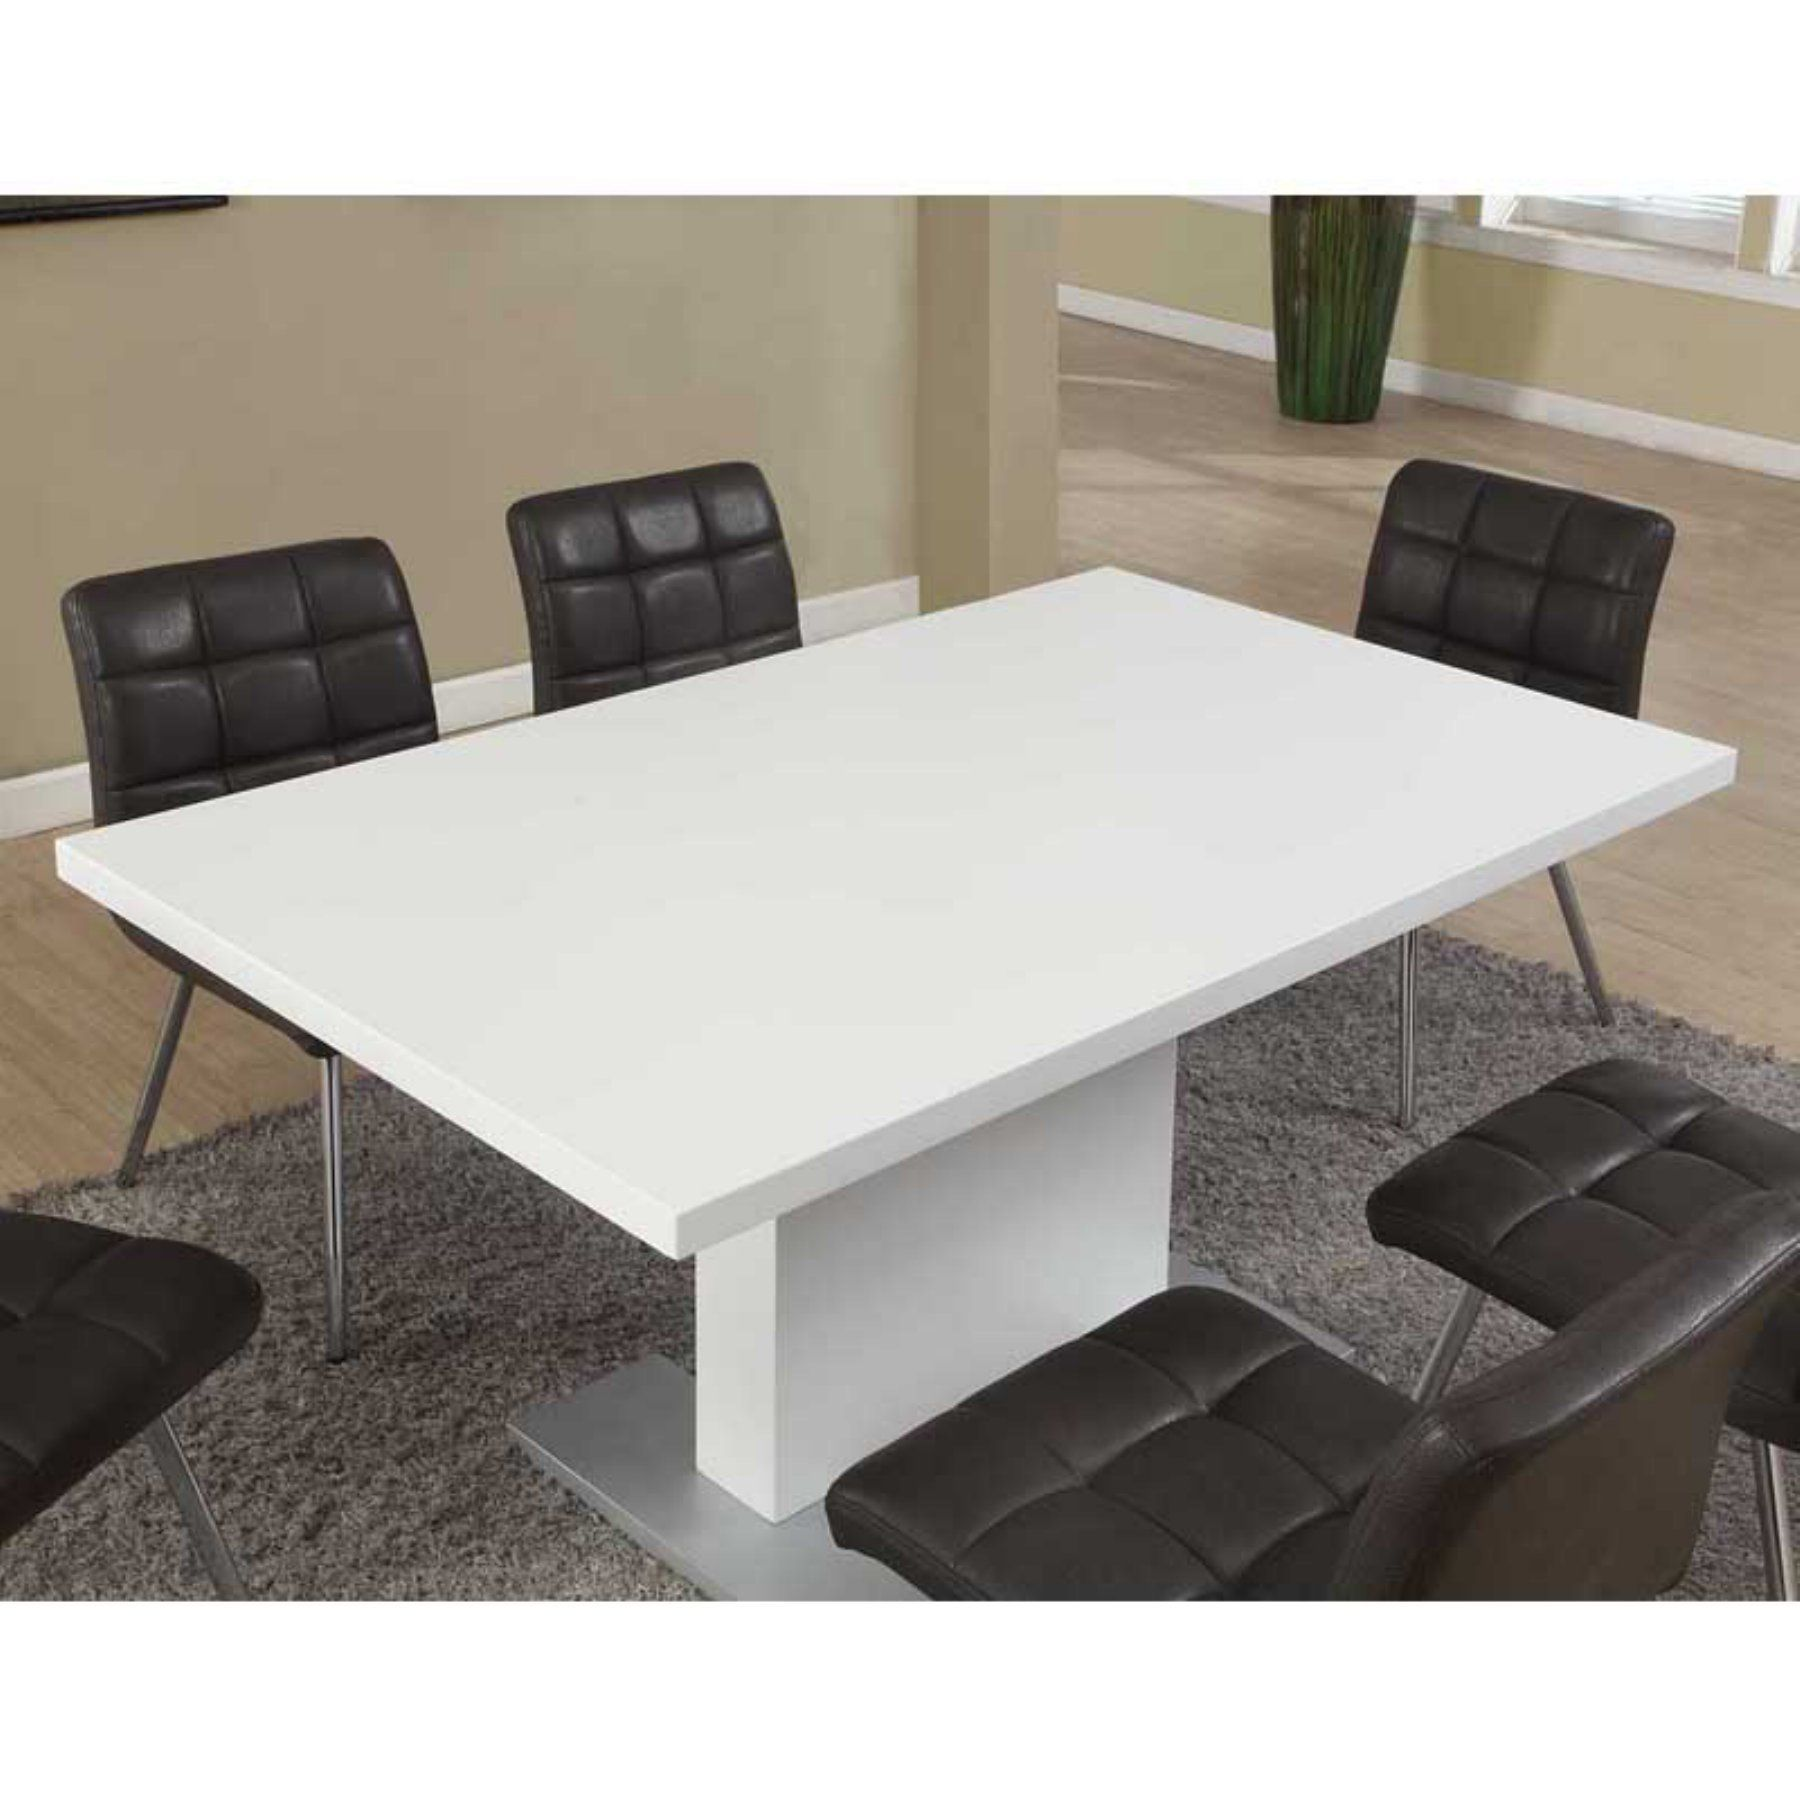 Monarch Fenwick High Glossy Rectangle Dining Table